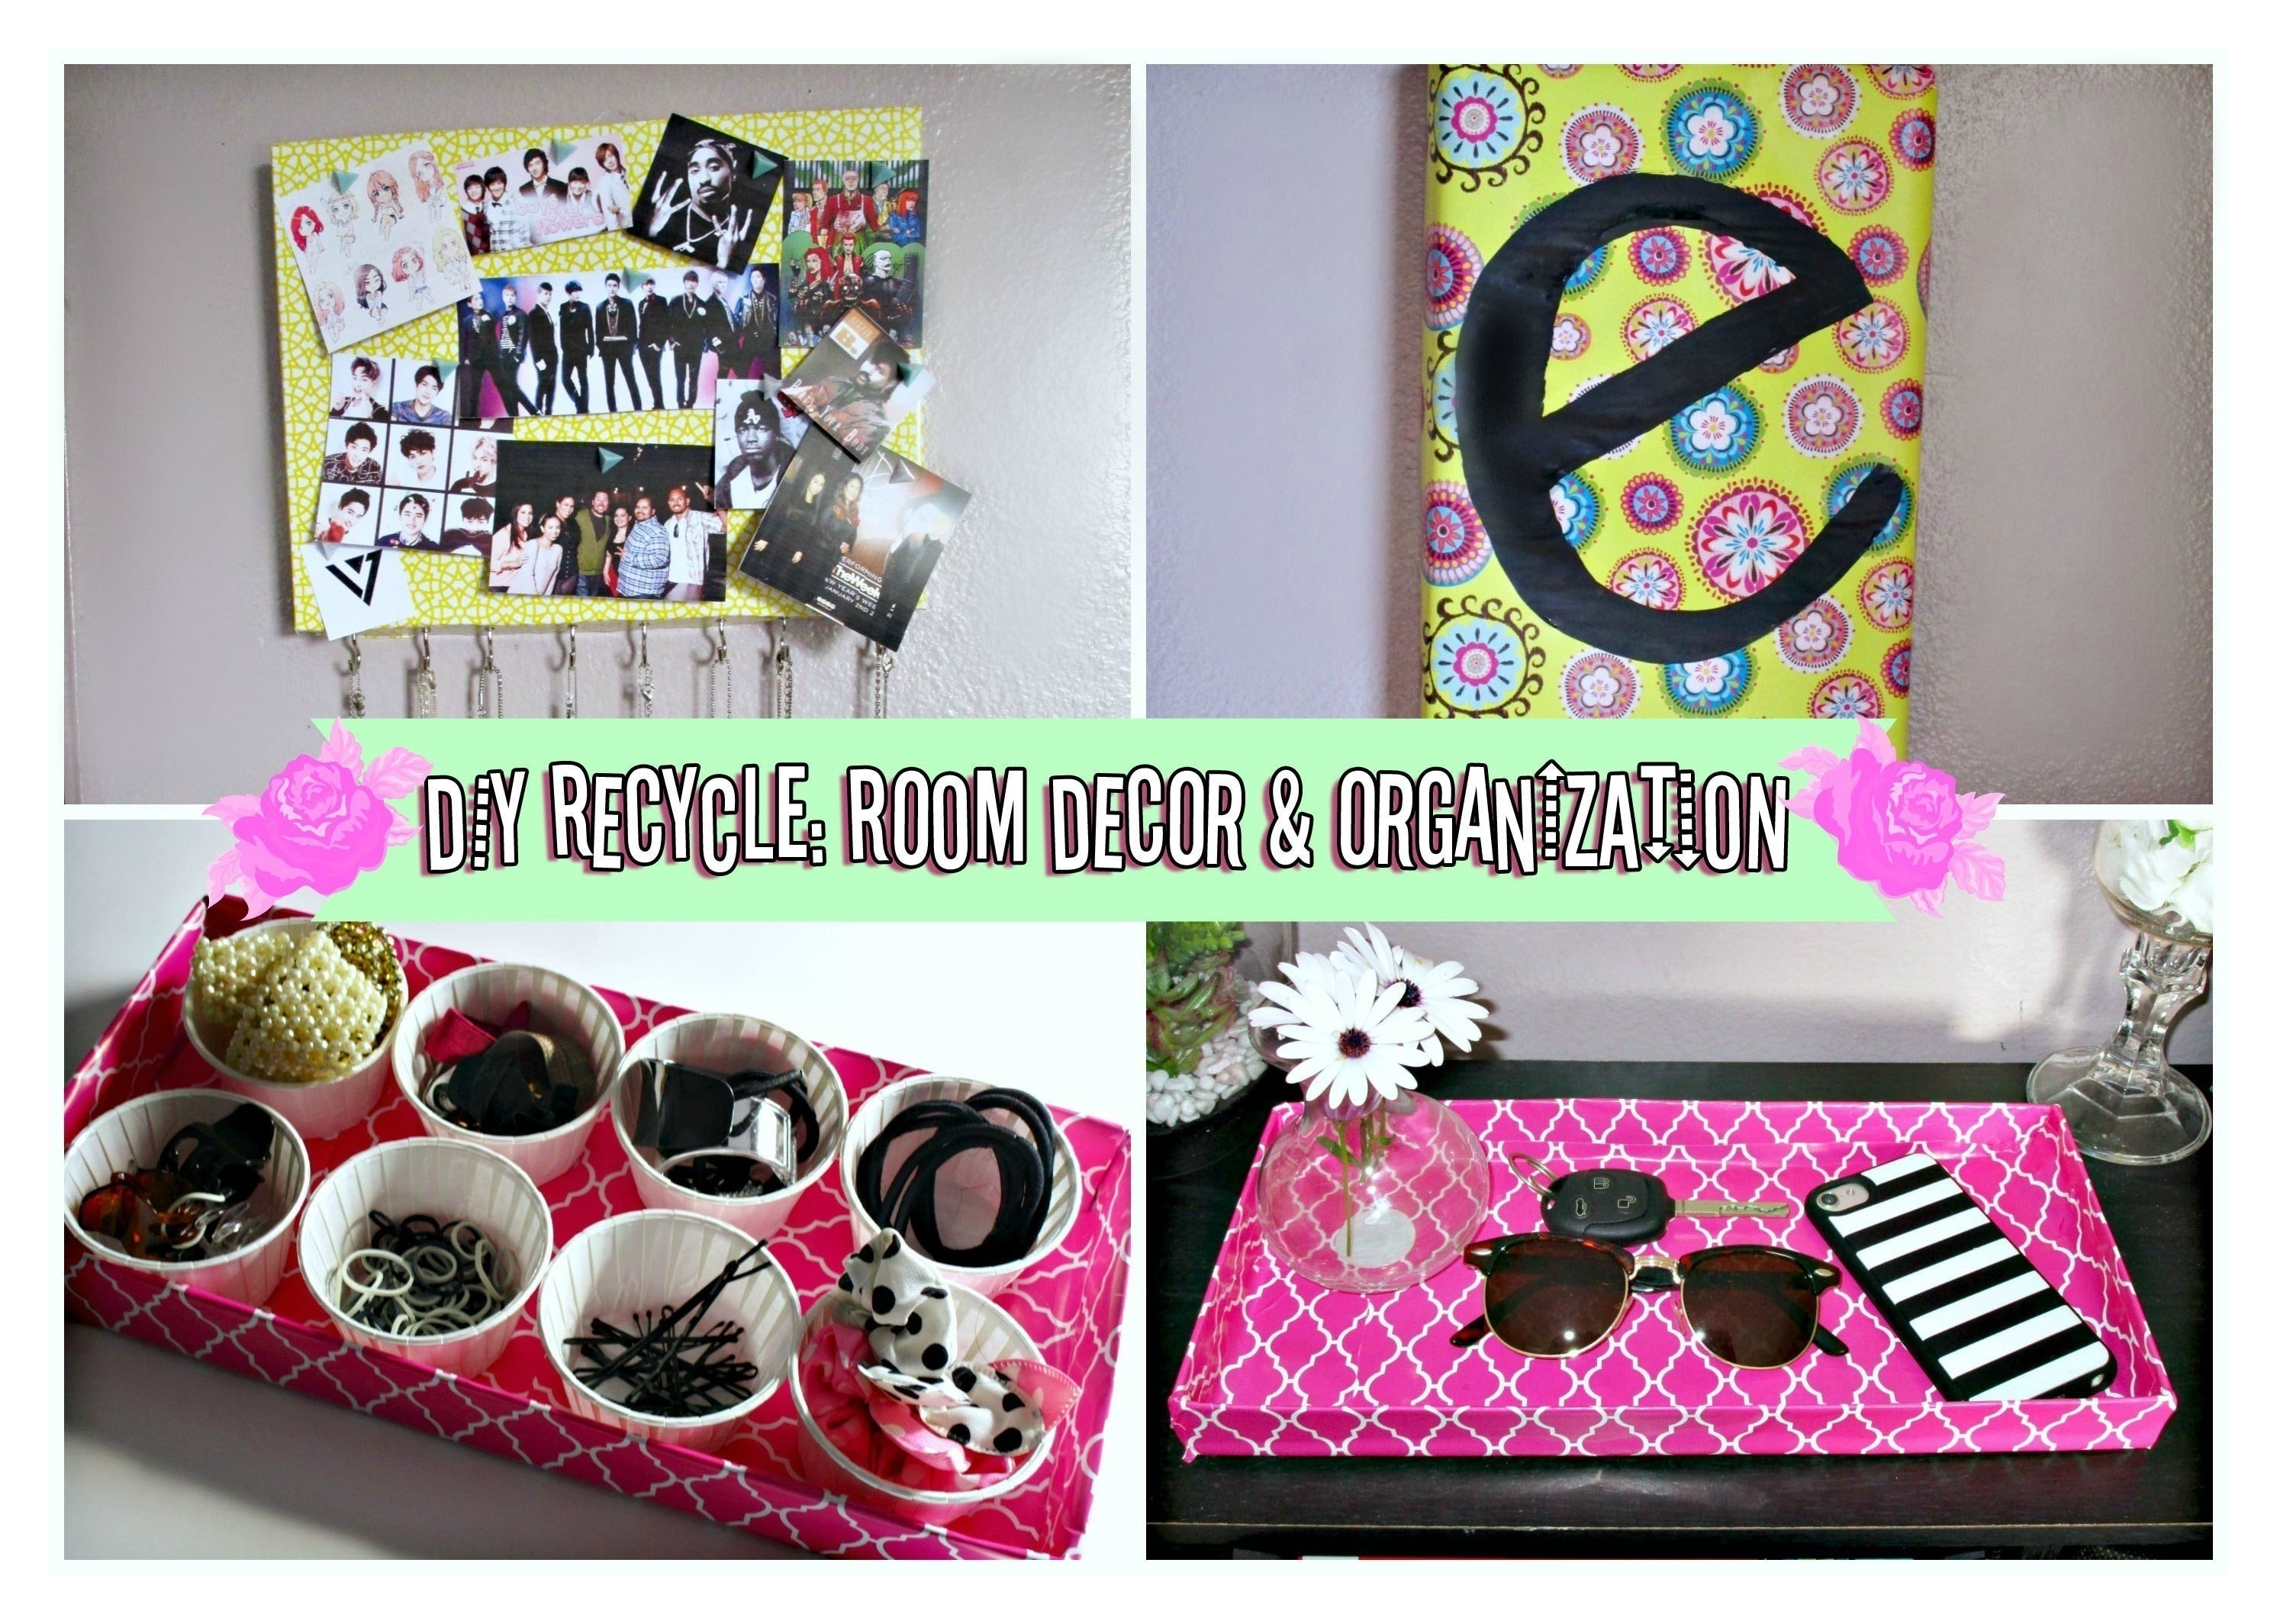 Diy Room Decor Organization Ideas For Spring Recycling